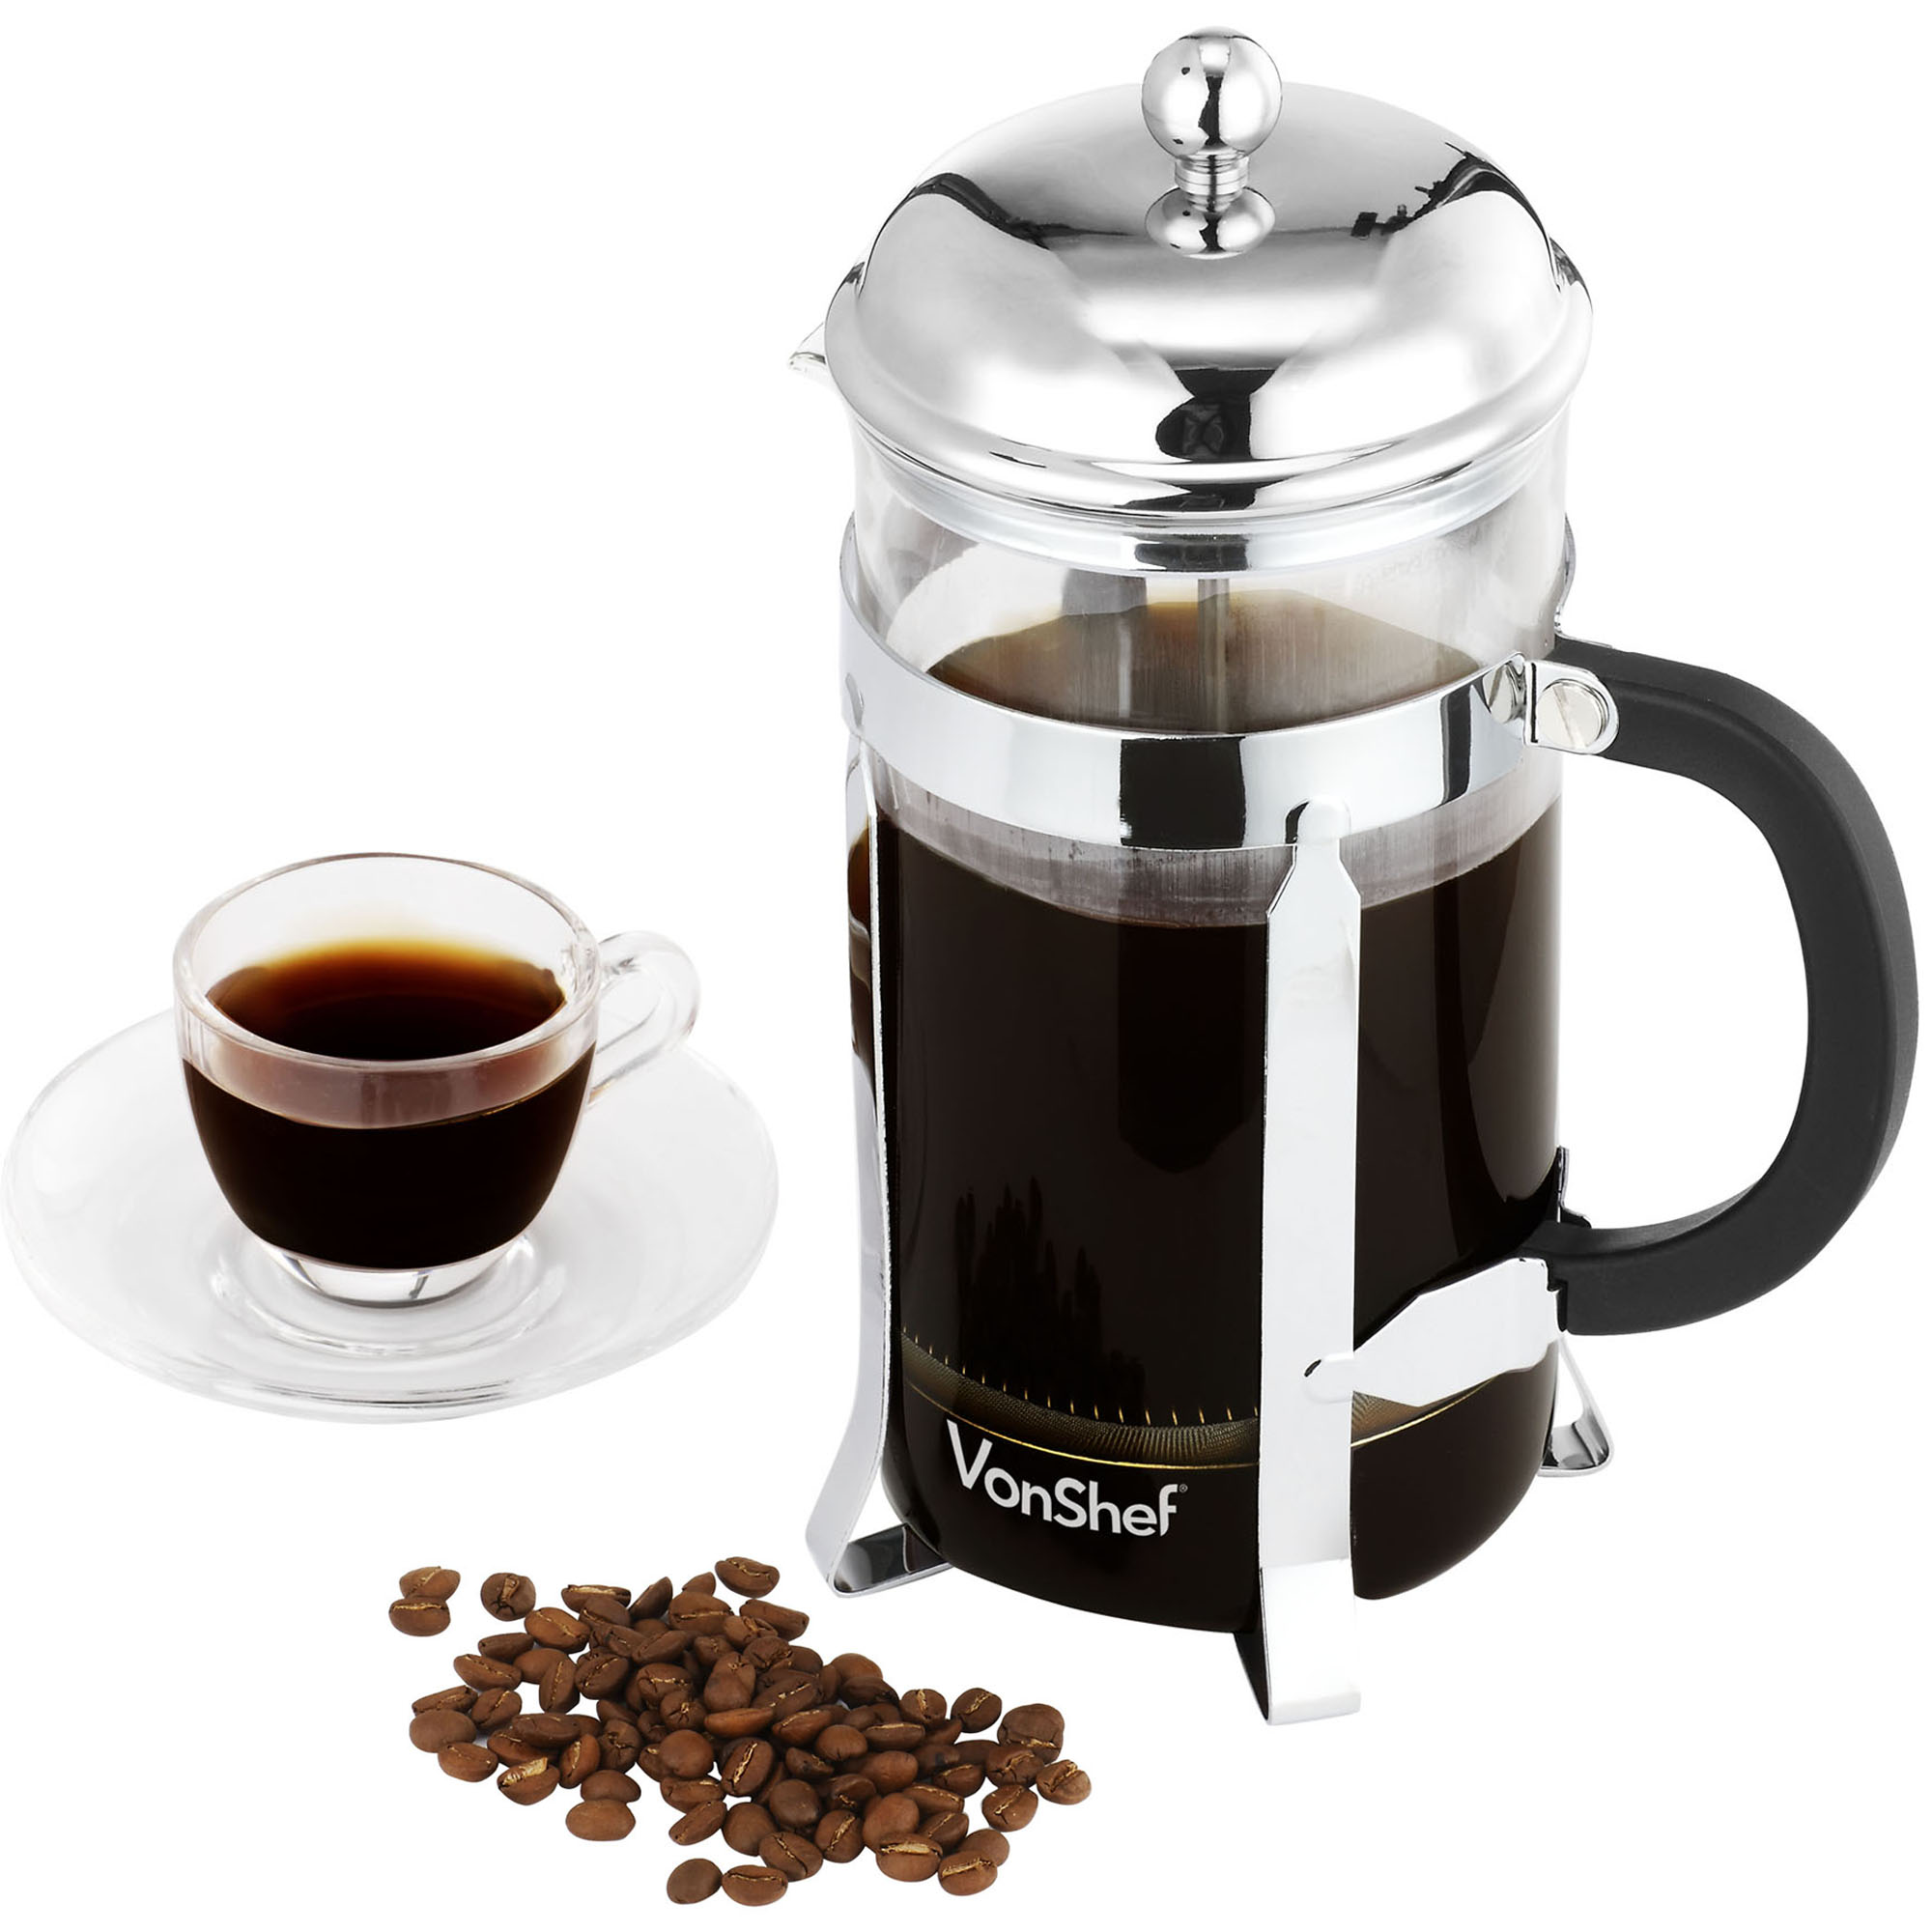 Cafetiere Barista Cafetiere Expresso Combin Expresso Cafeti Re Proline